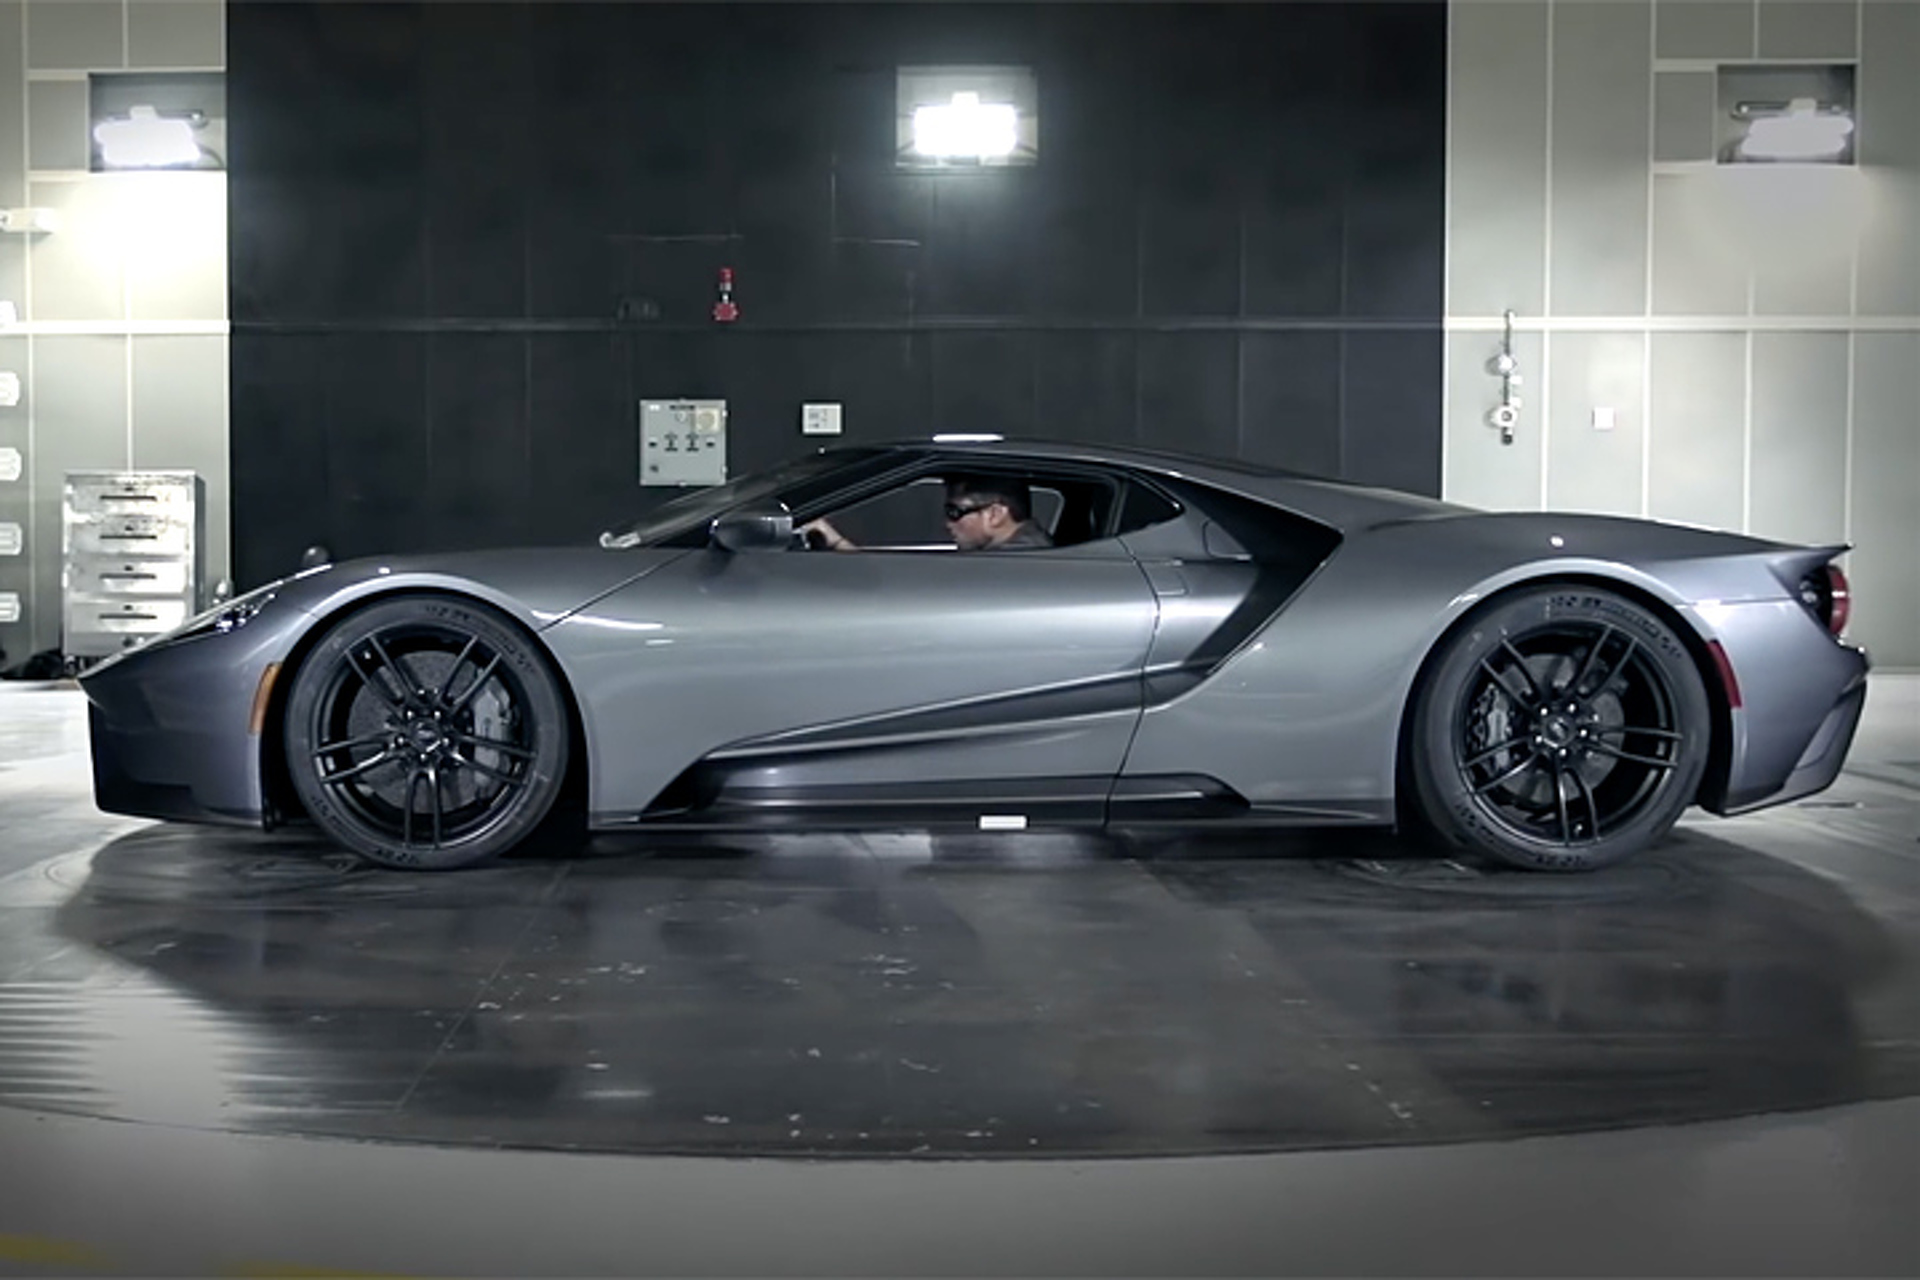 Watch The Aerodynamics Of The Ford Gt In Action